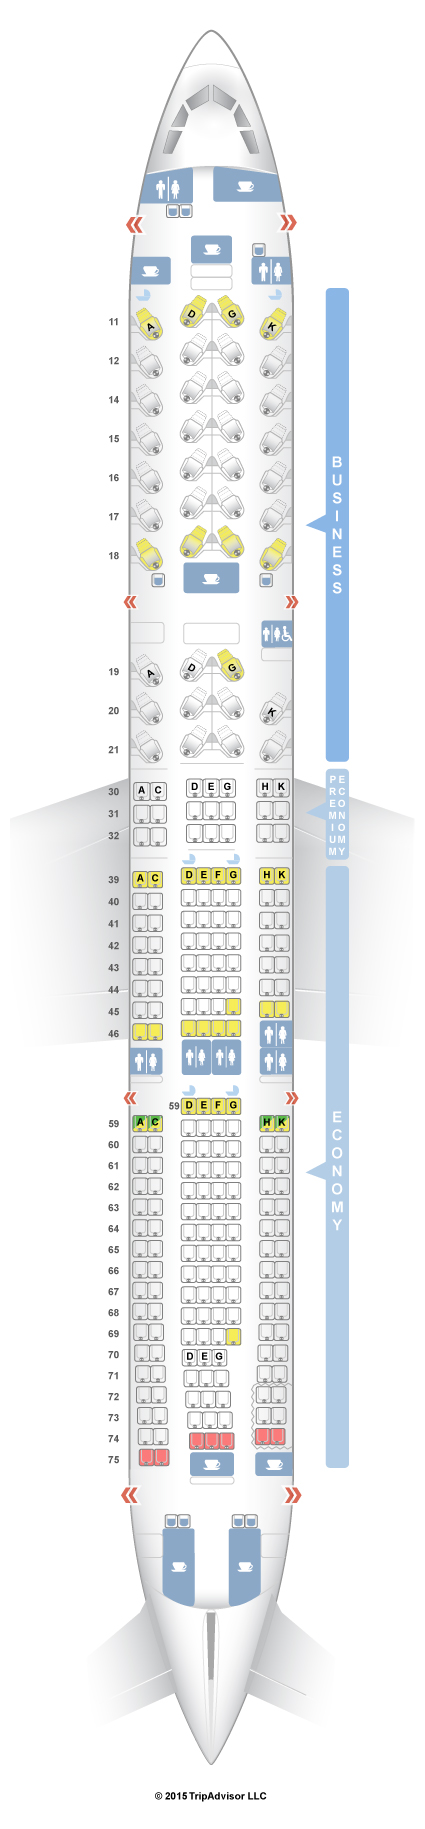 Cathay Pacific Seat Map SeatGuru Seat Map Cathay Pacific Airbus A330 300 (33K) Three Class Cathay Pacific Seat Map